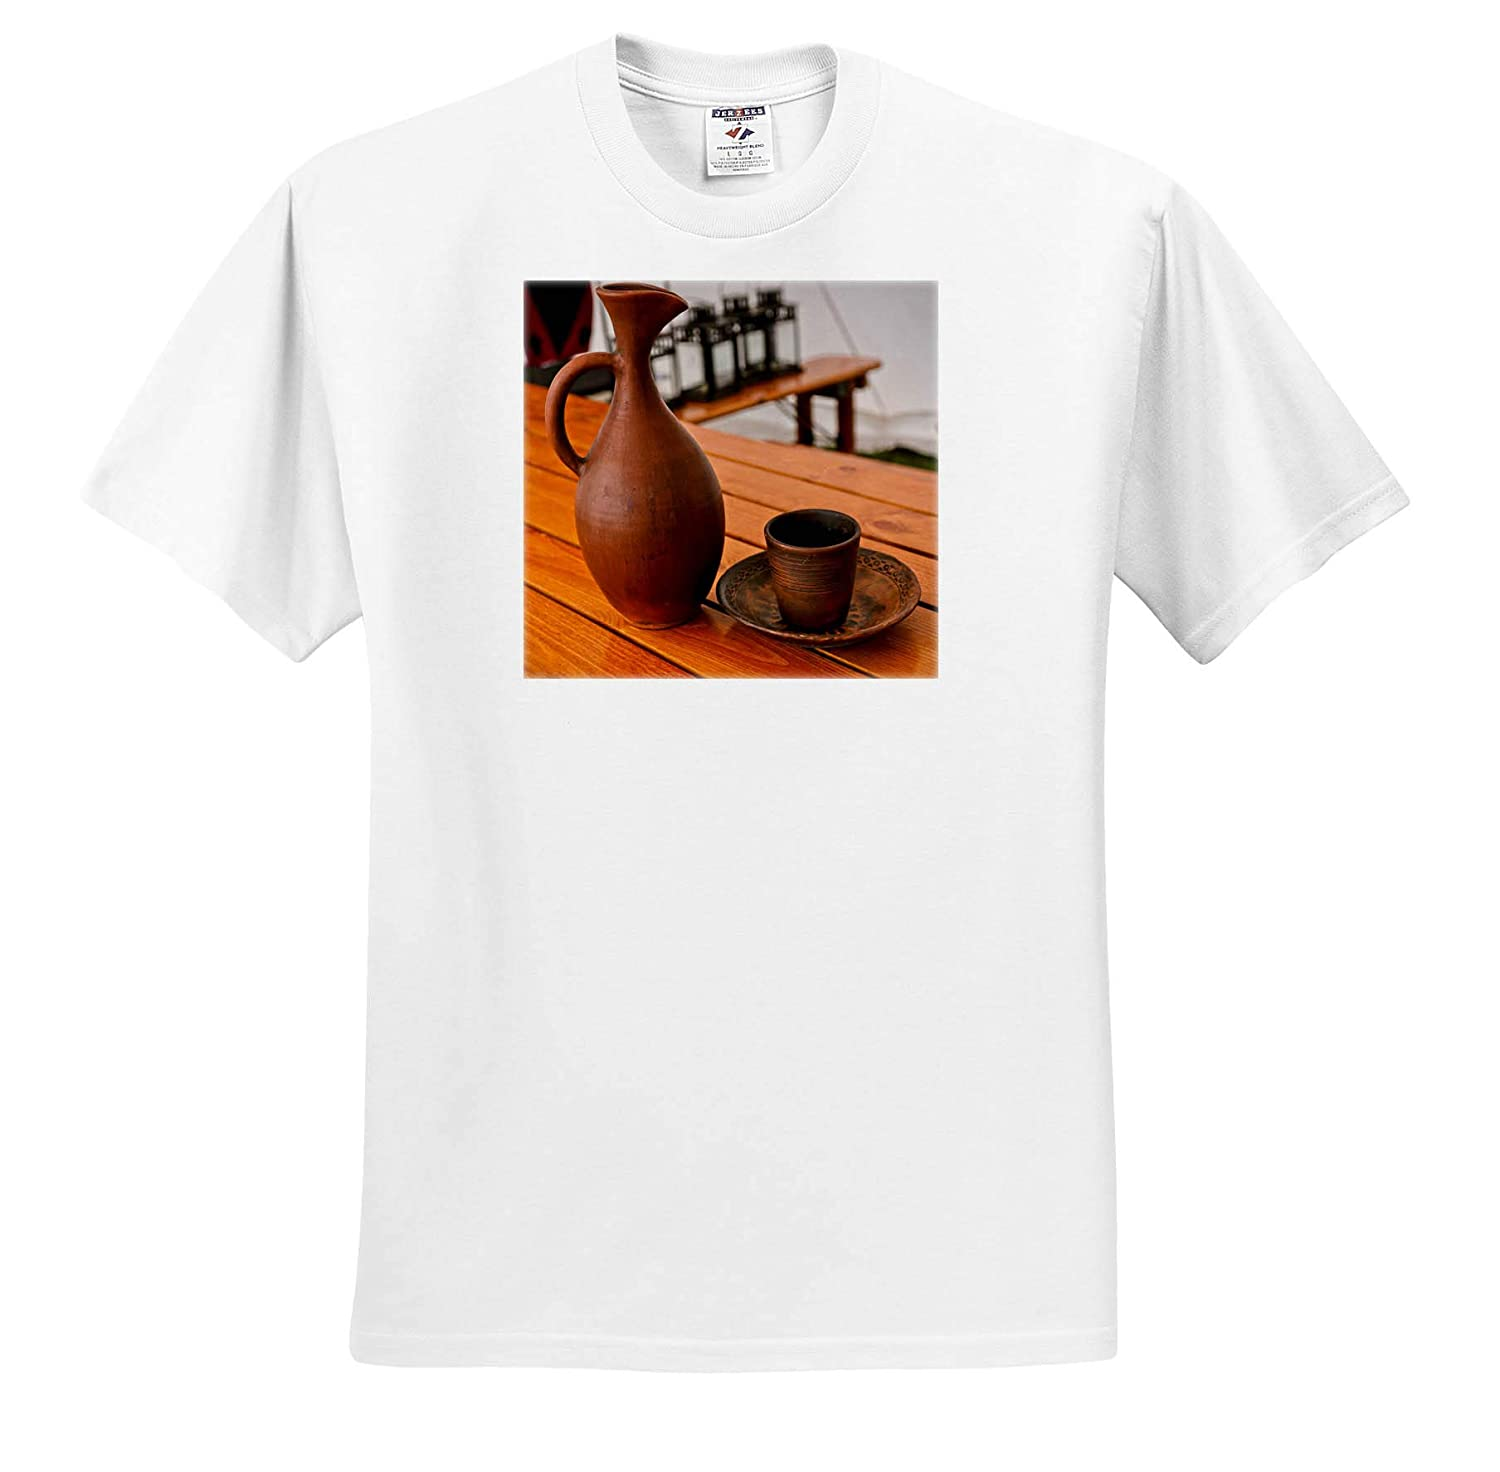 3dRose Alexis Photography A Decorative Earthenware Pitcher and a Ceramic Mug on a Table Still-Life T-Shirts